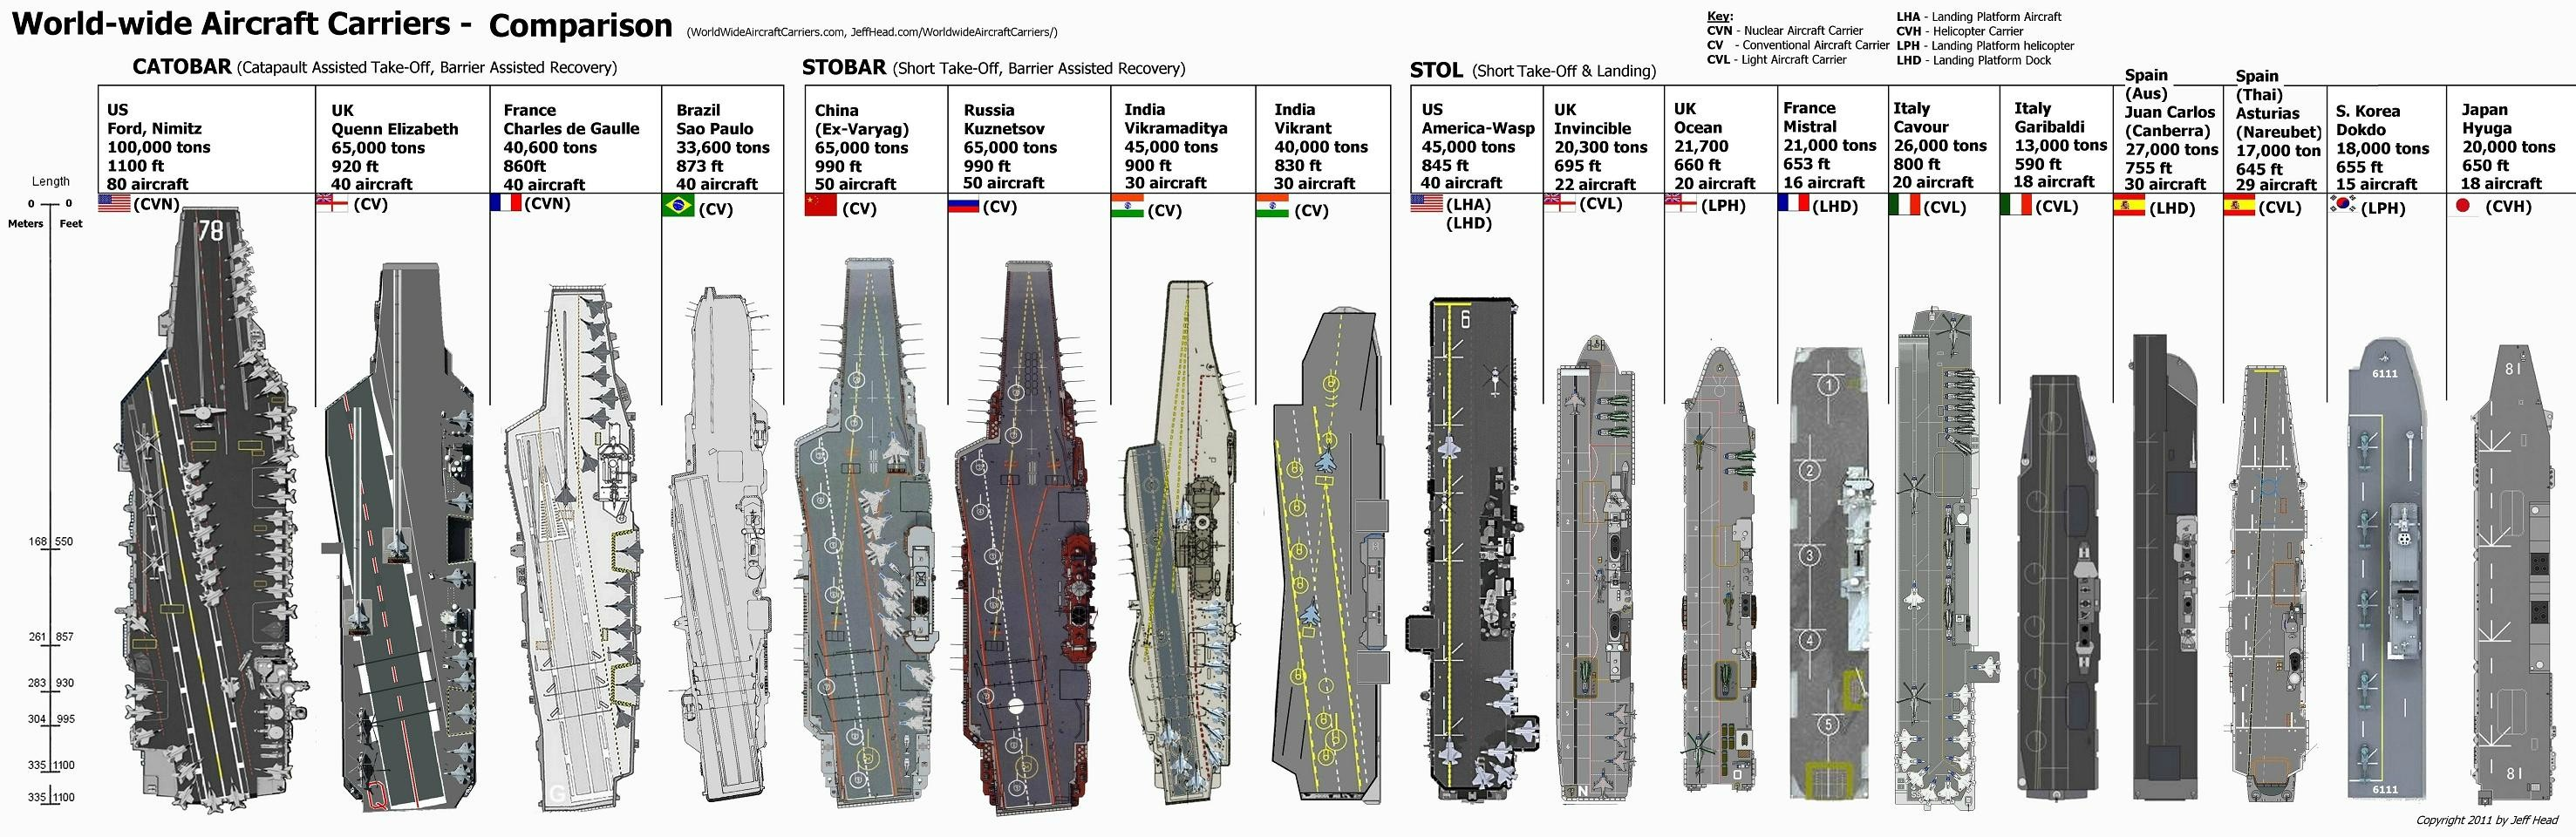 Aircraft Carrier Size Comparison By Zhanrae30 On Deviantart